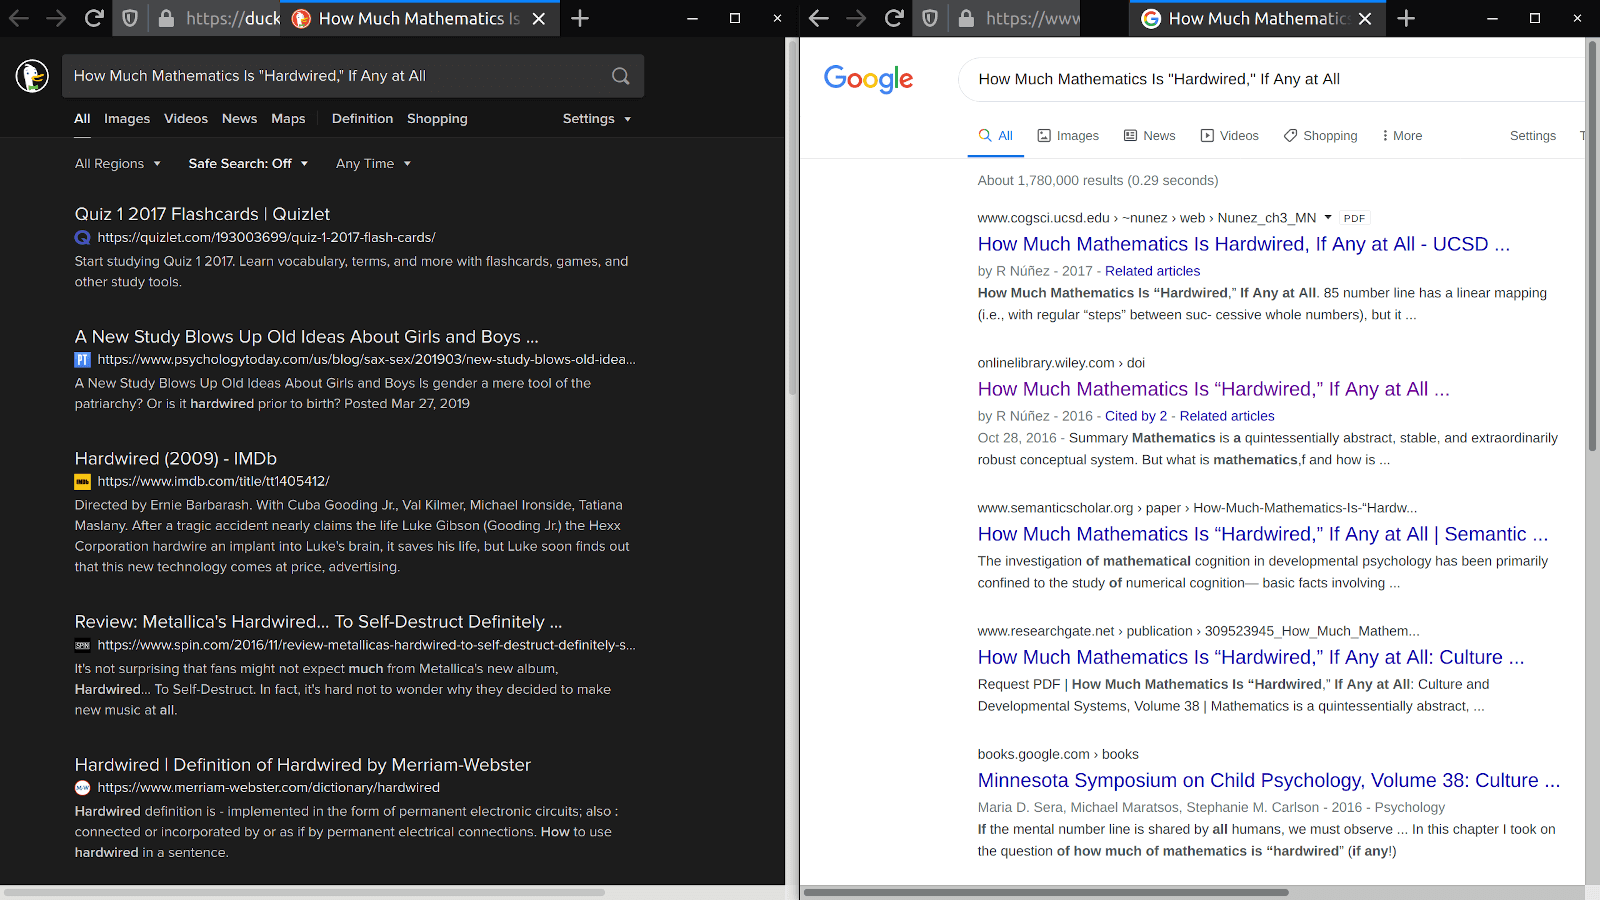 Another ddg vs google search results page